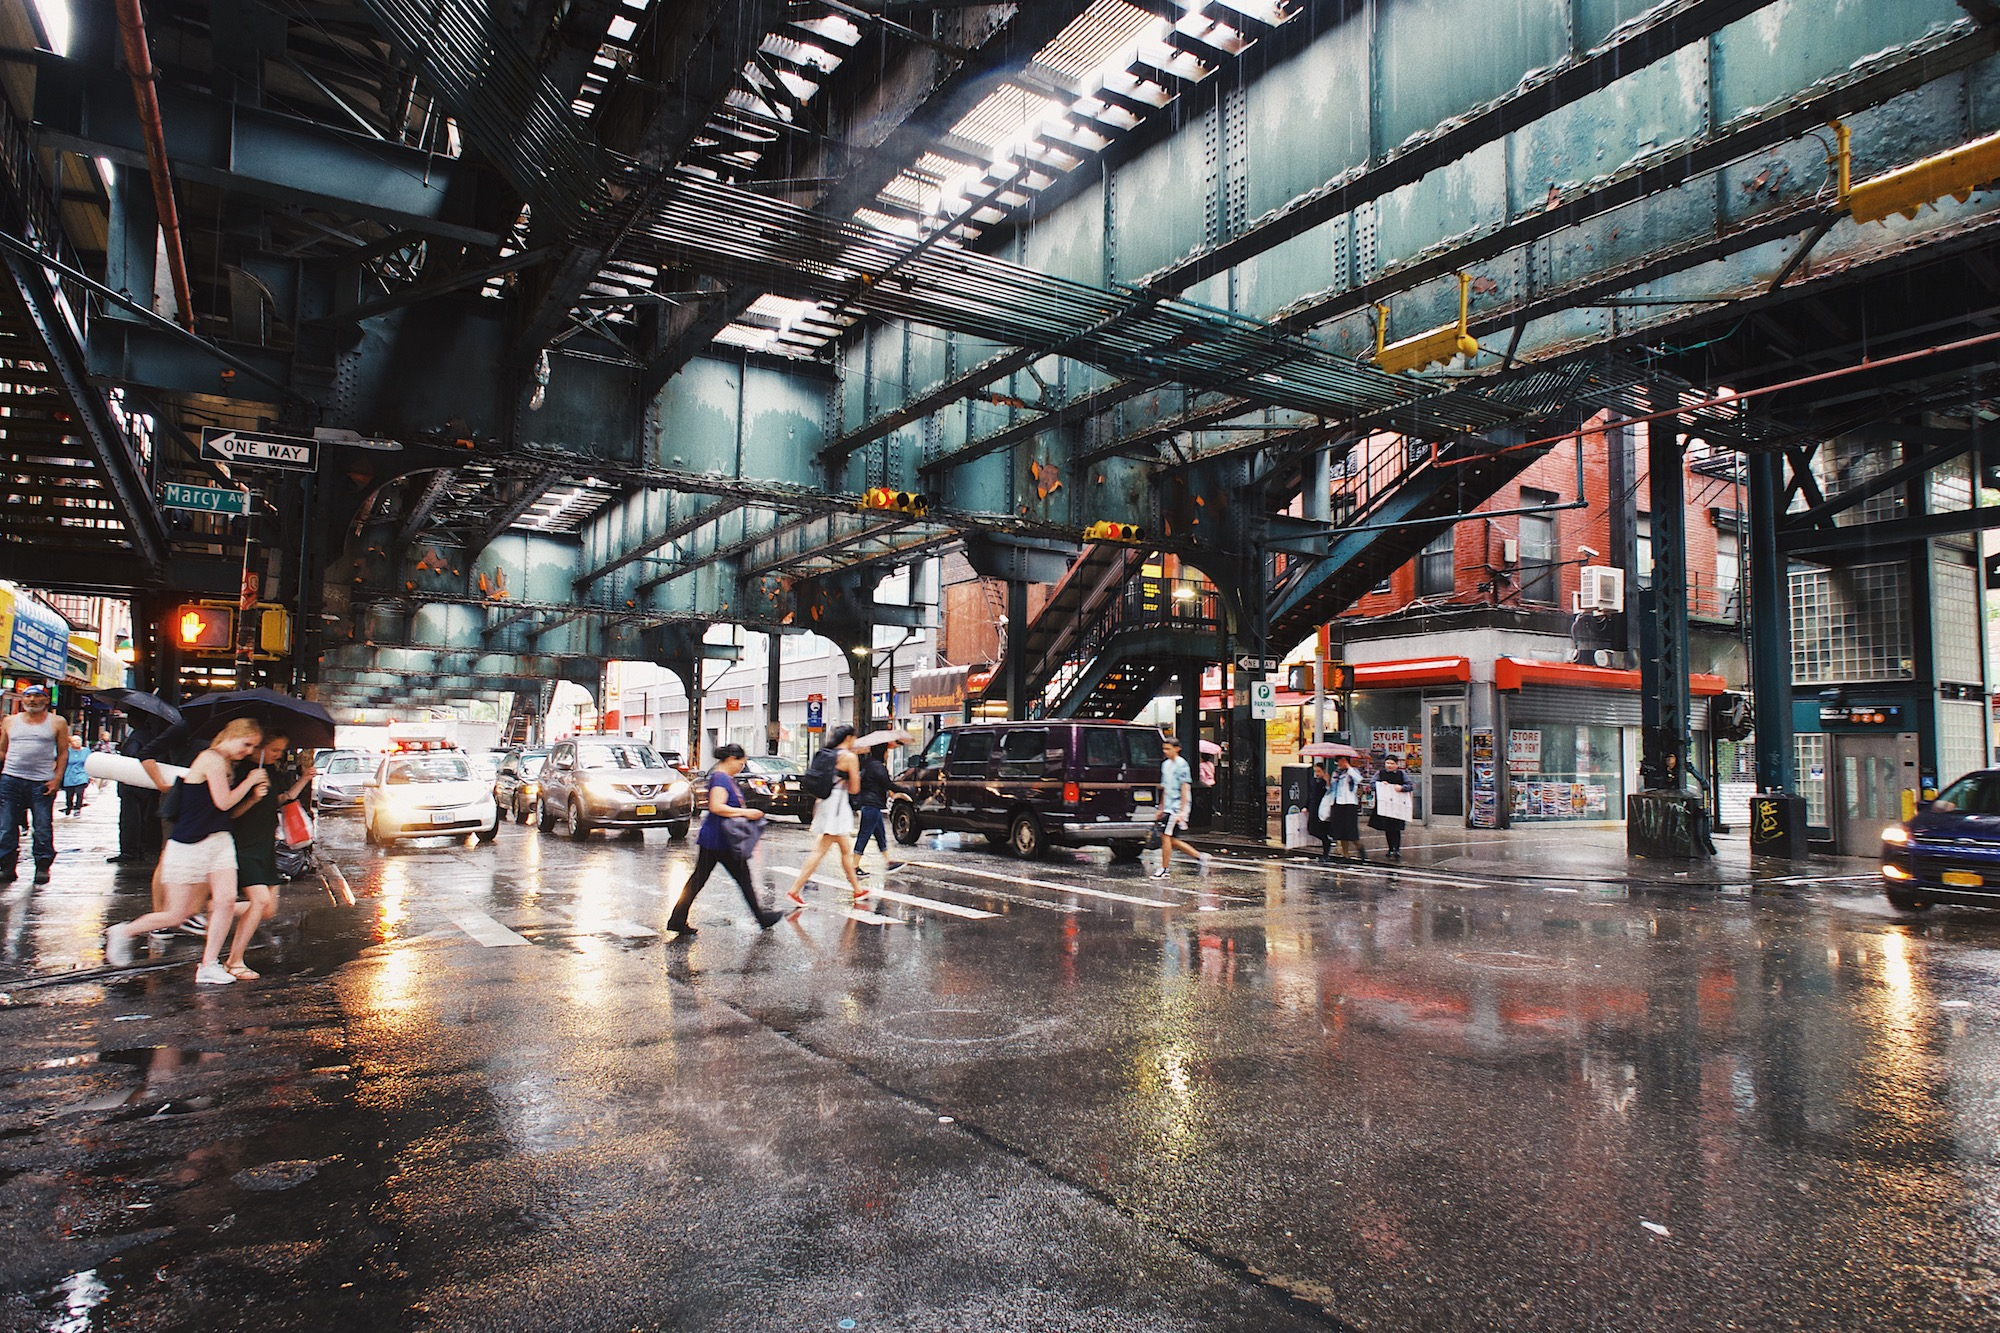 Under the metro - Wondering around BK always leads to some fantastic scenes and it definitely is a street photographers dream. The overhead subways lead to amazing light, especially at dusk or when it rains, and the diverse culture made people watching really quite fun.